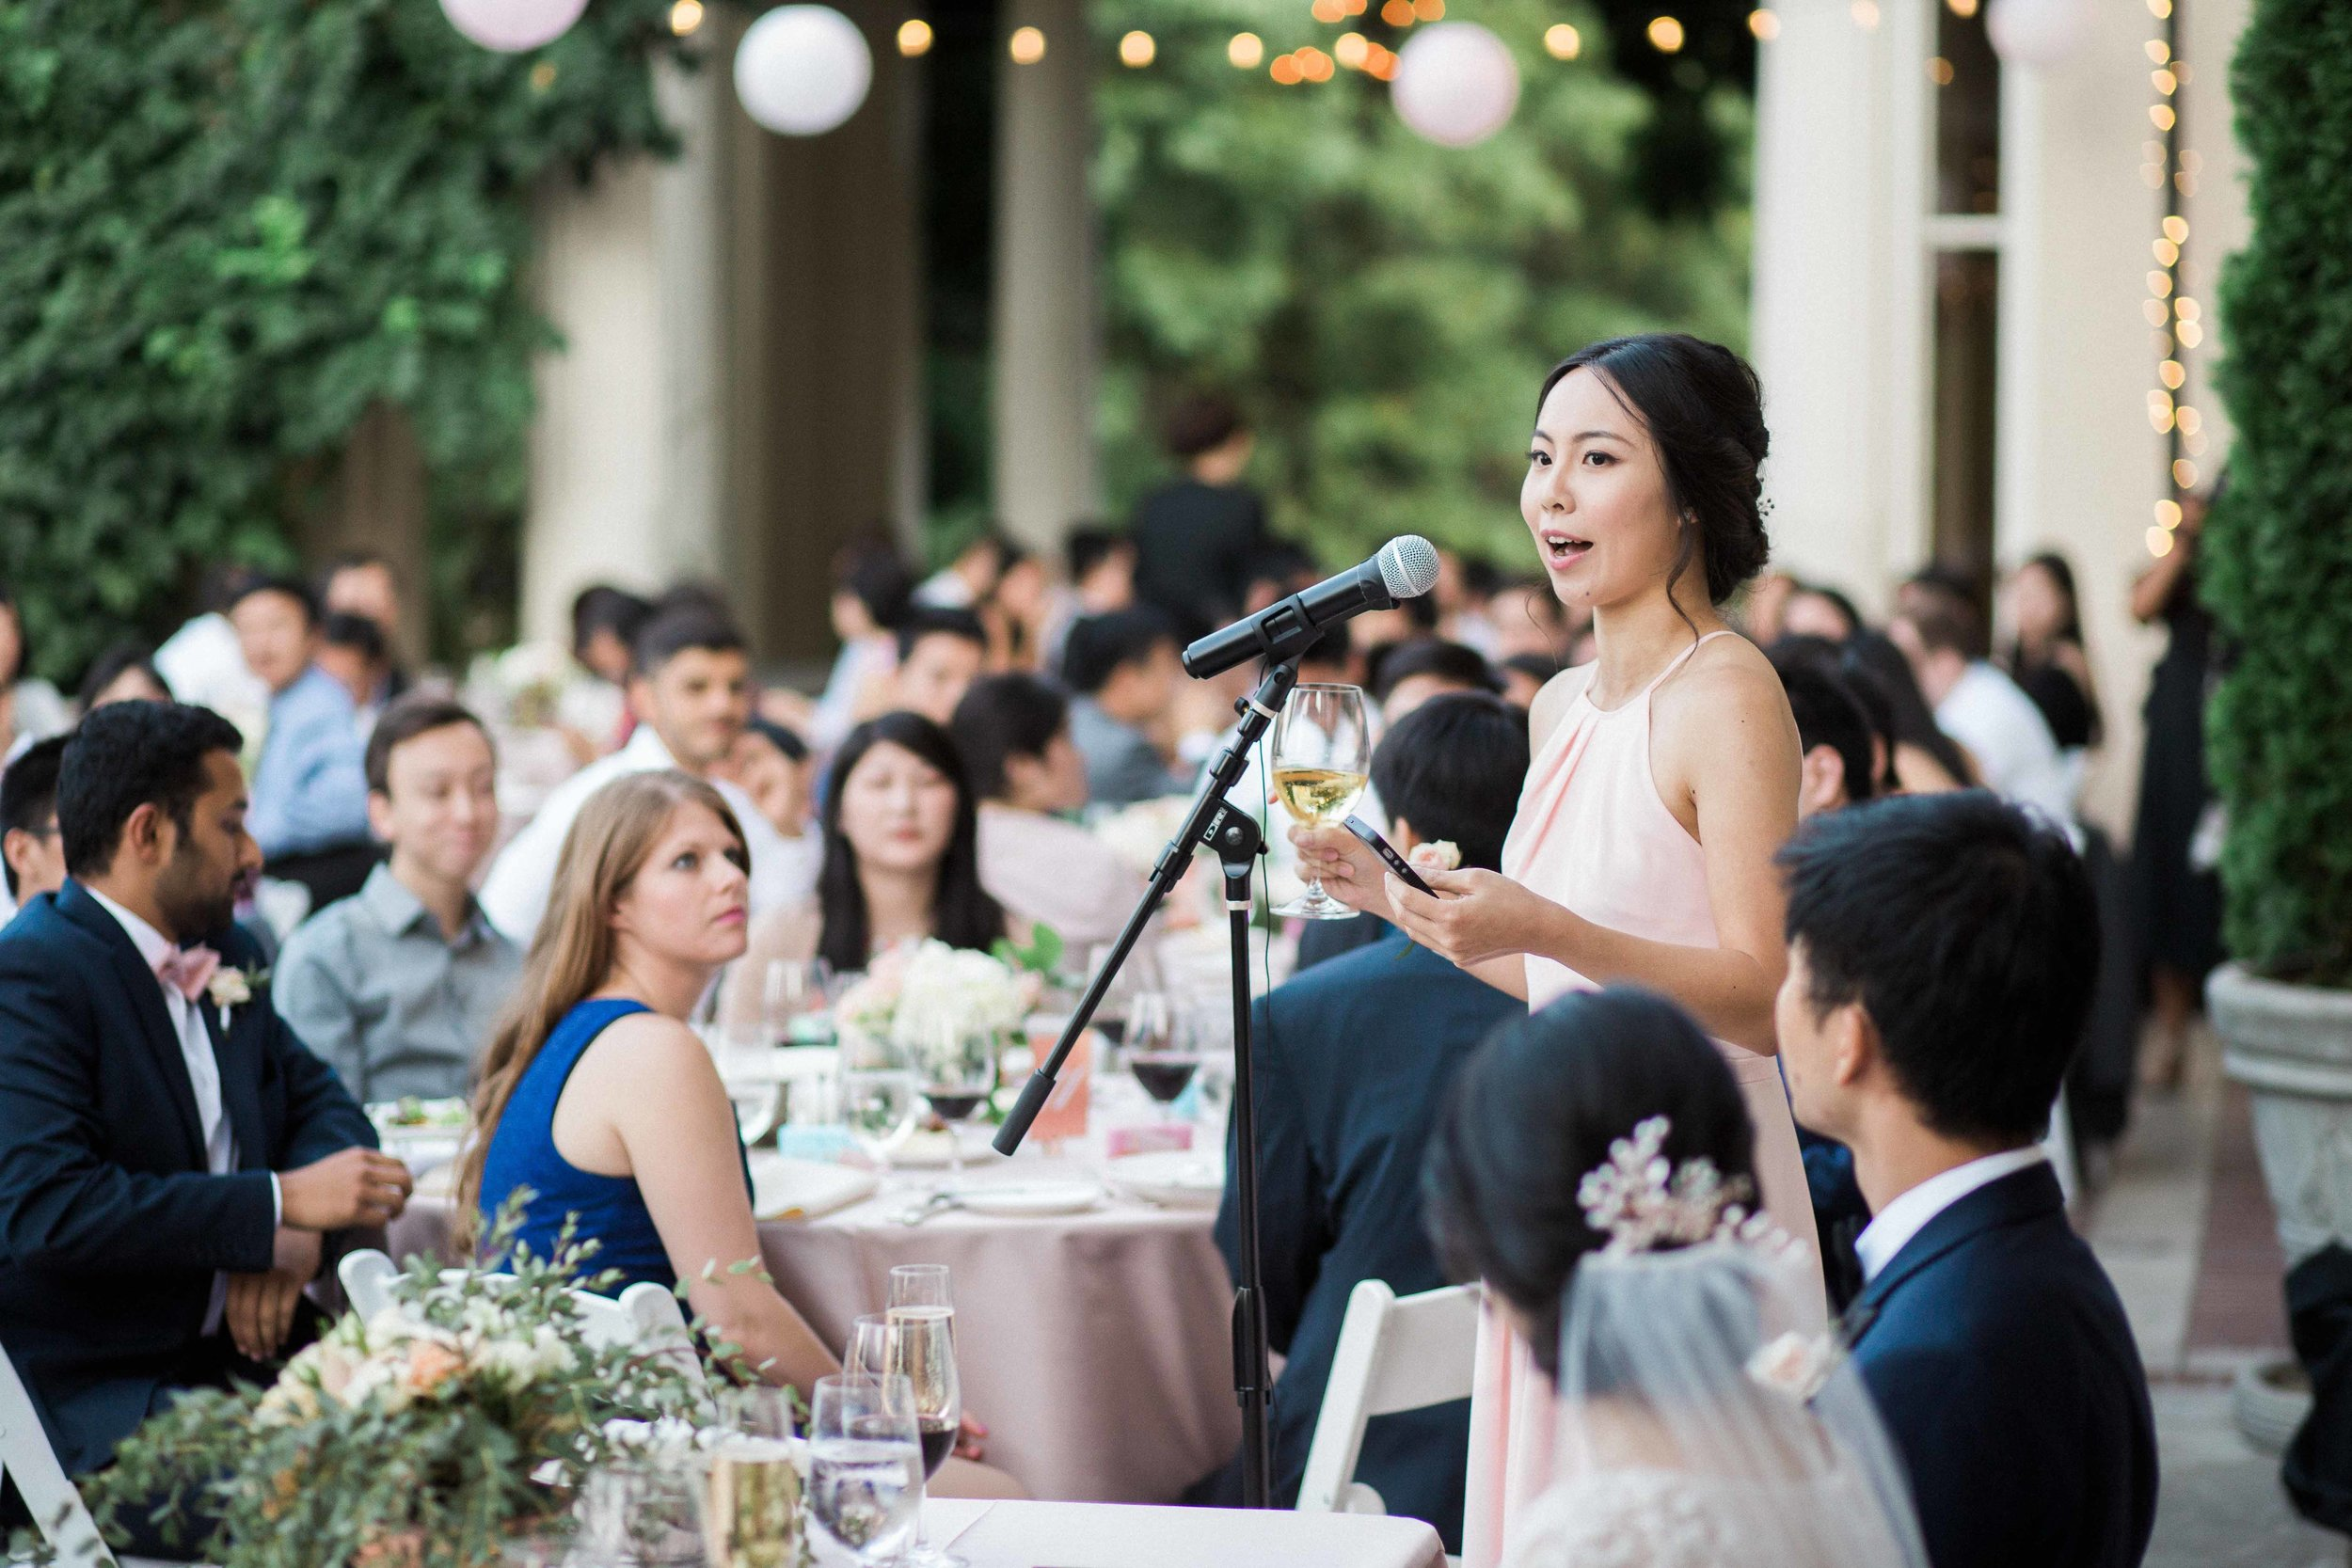 Villa_Montalvo_Wedding_Photographer_Videographer_San_Francisco174.jpg